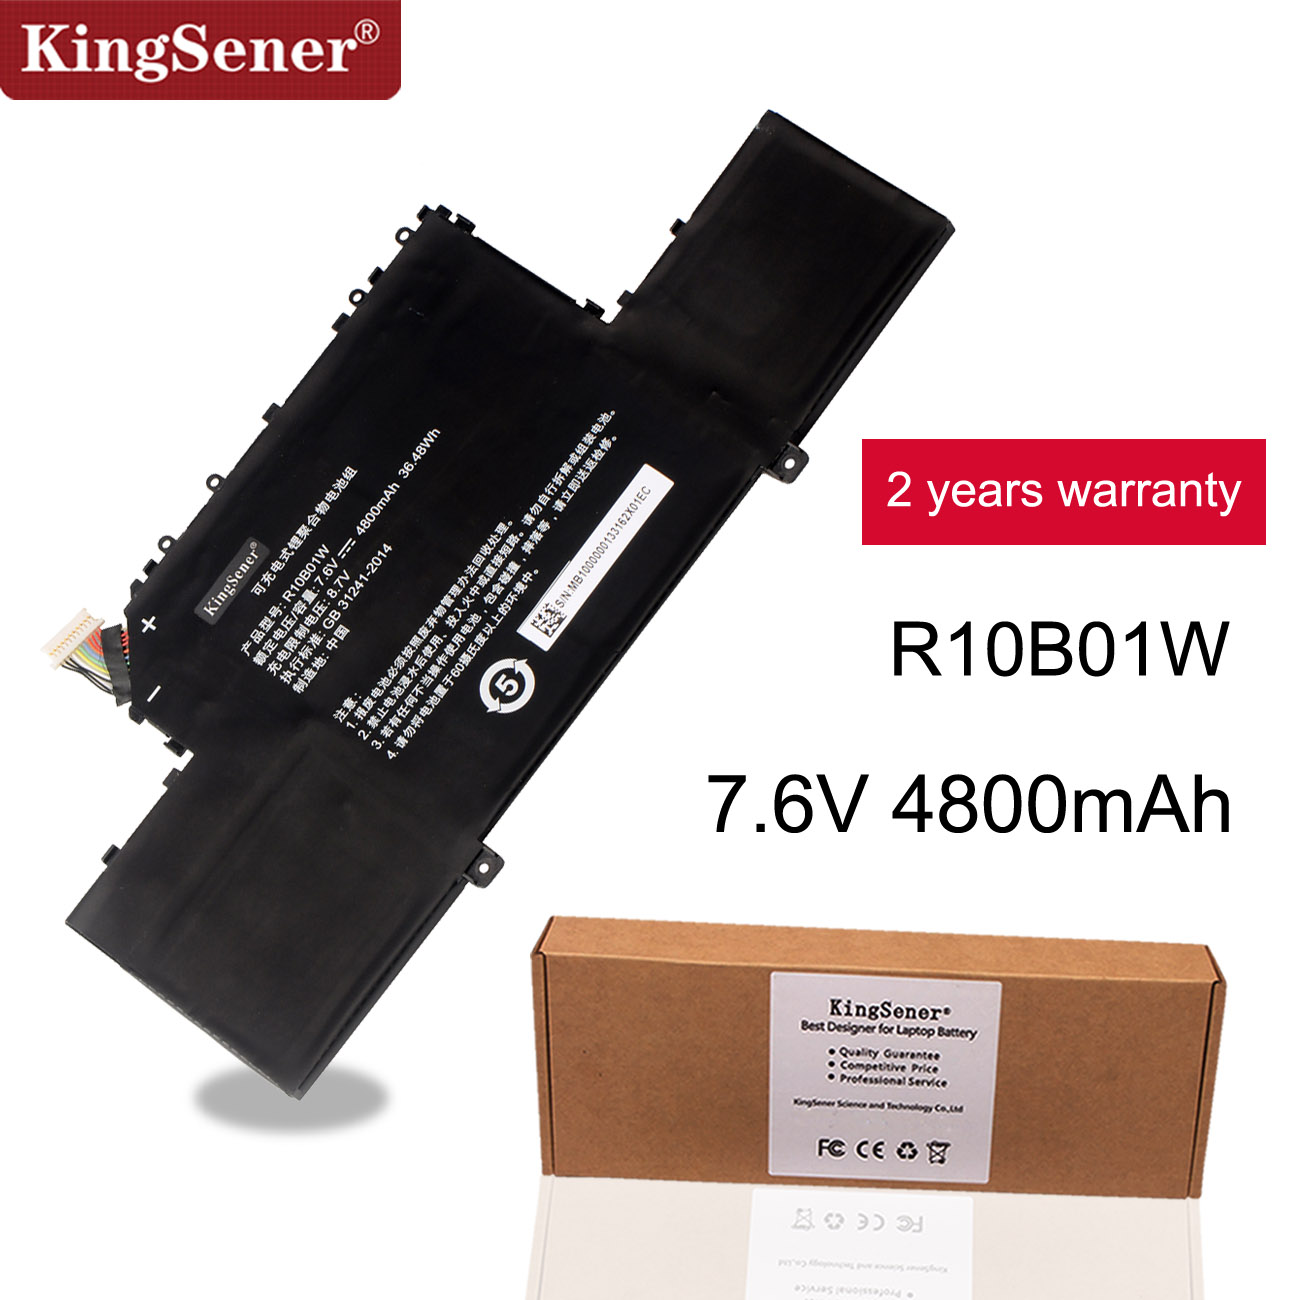 KingSener R10B01W R10BO1W Laptop Battery For Xiaomi Mi Air 12.5